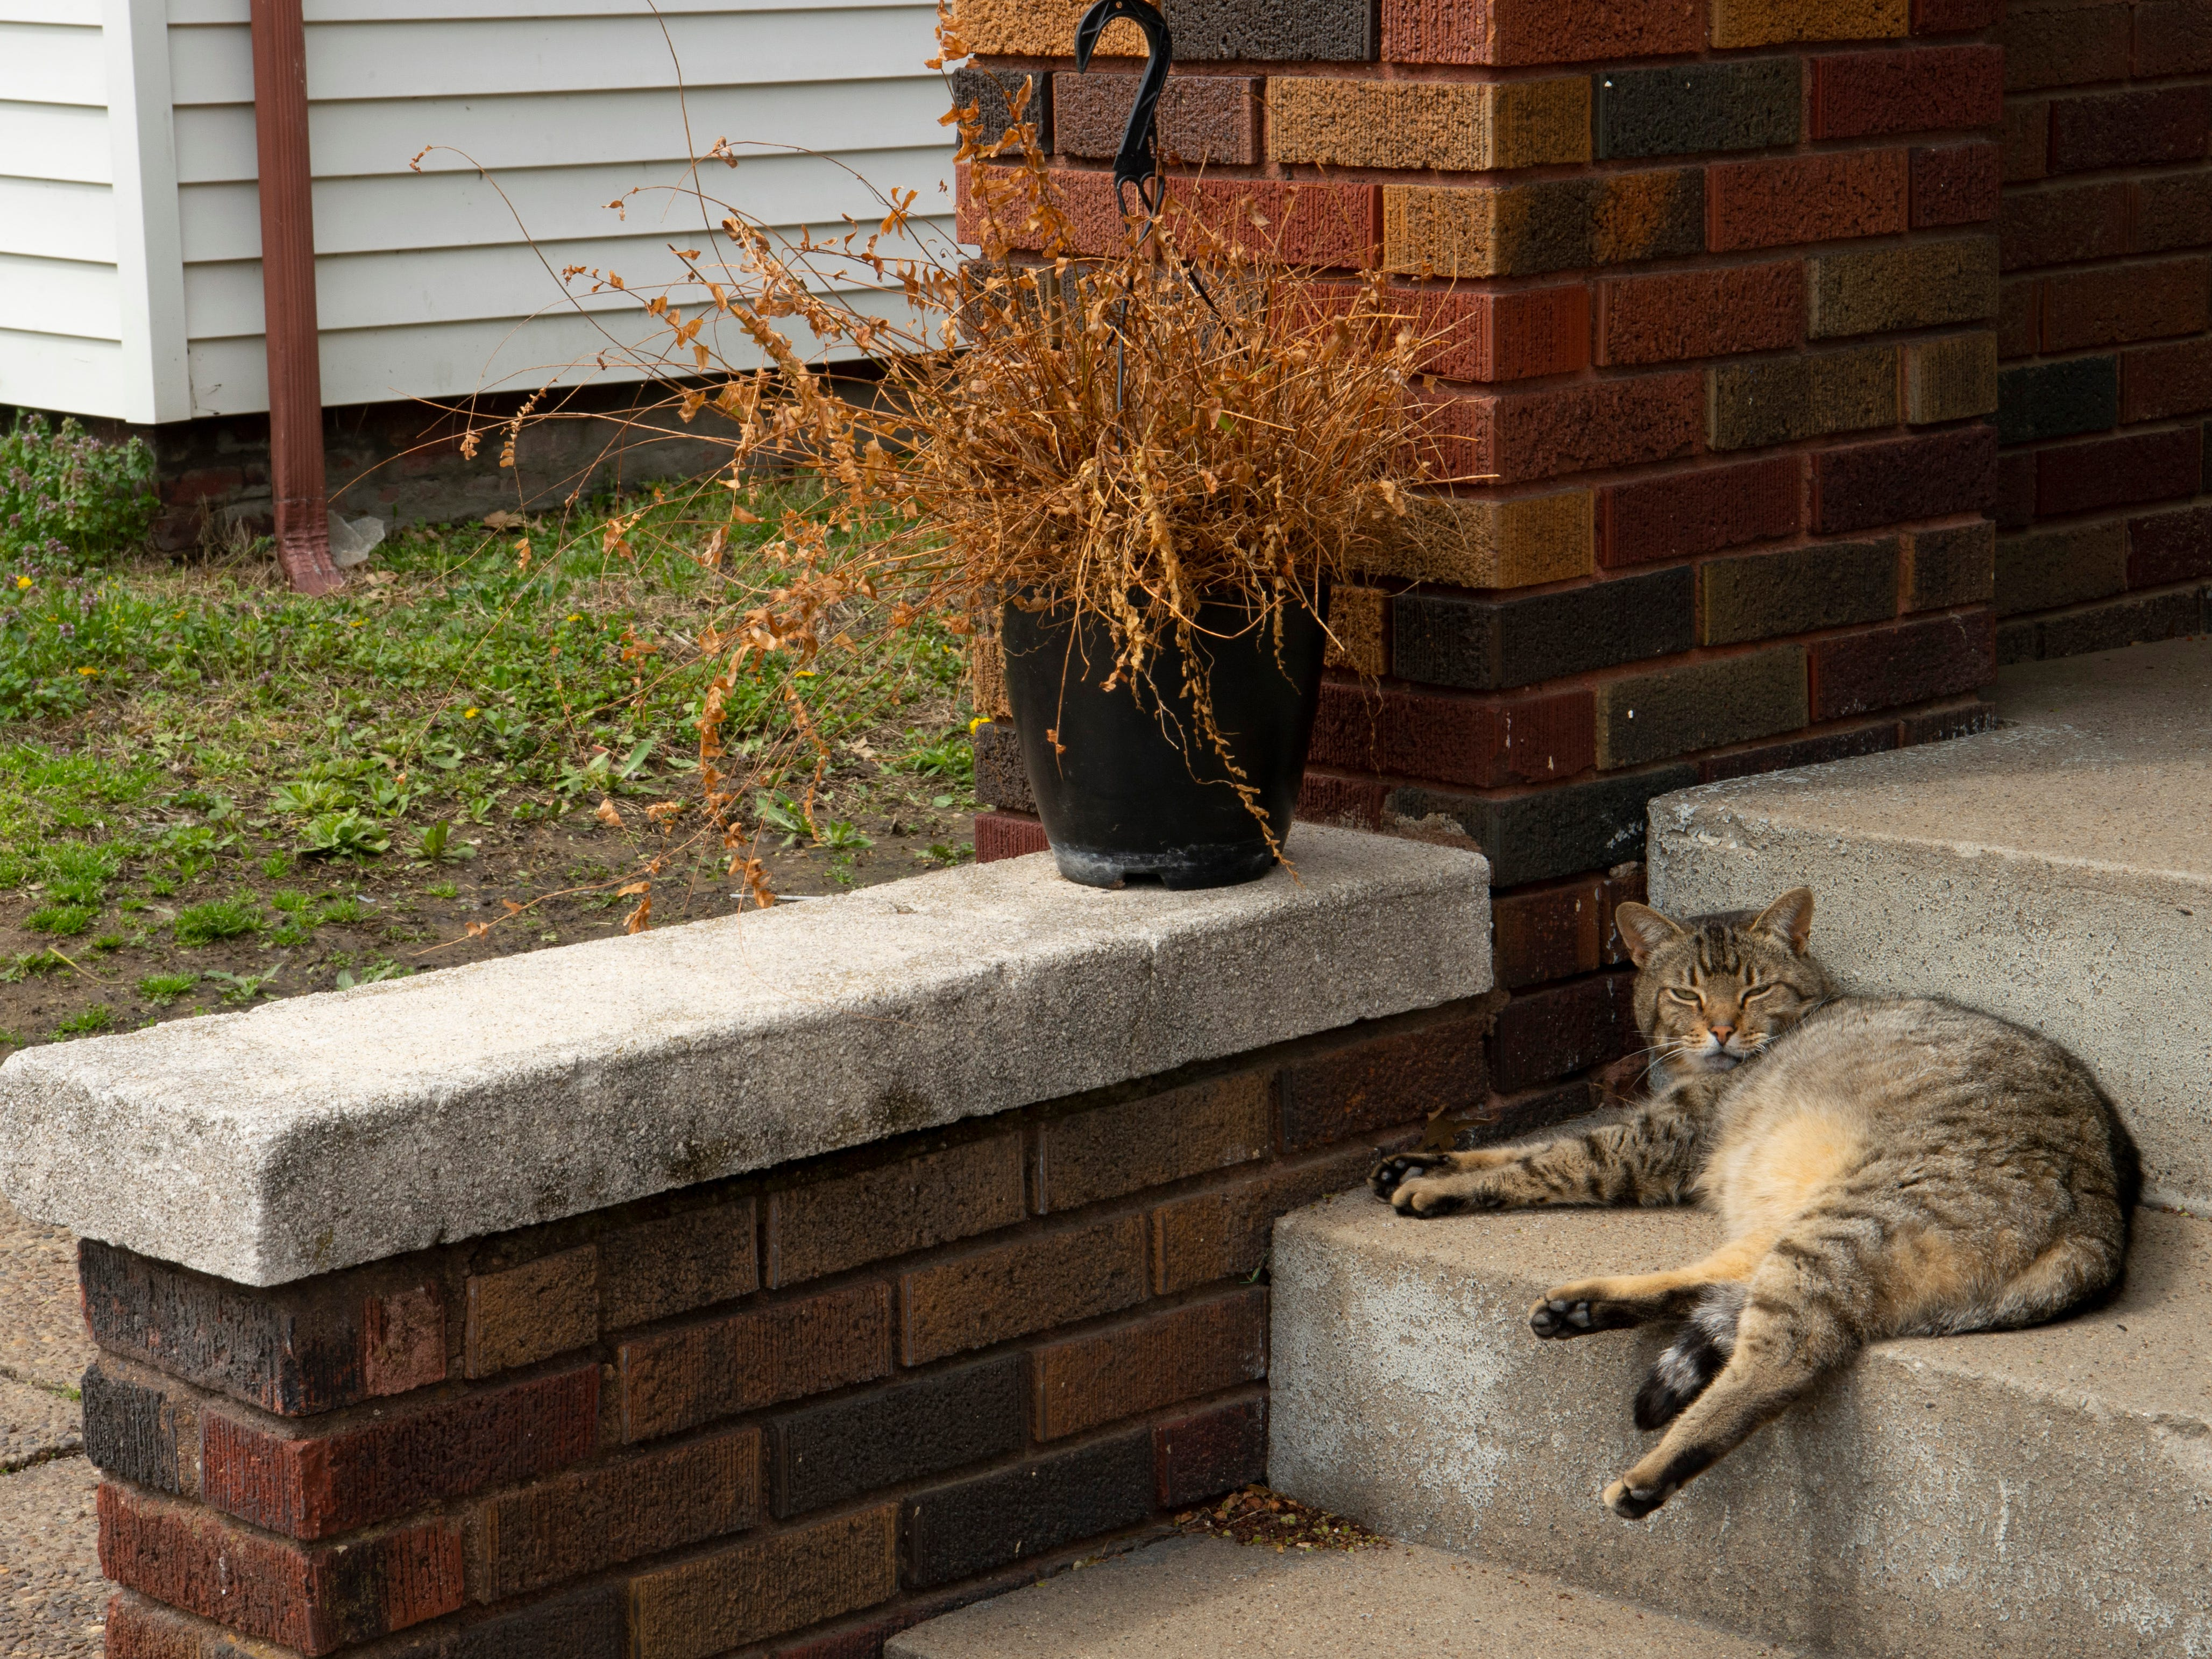 A sun-warmed concrete step made an inviting place to lounge for a Jacobsville neighborhood cat Monday afternoon.